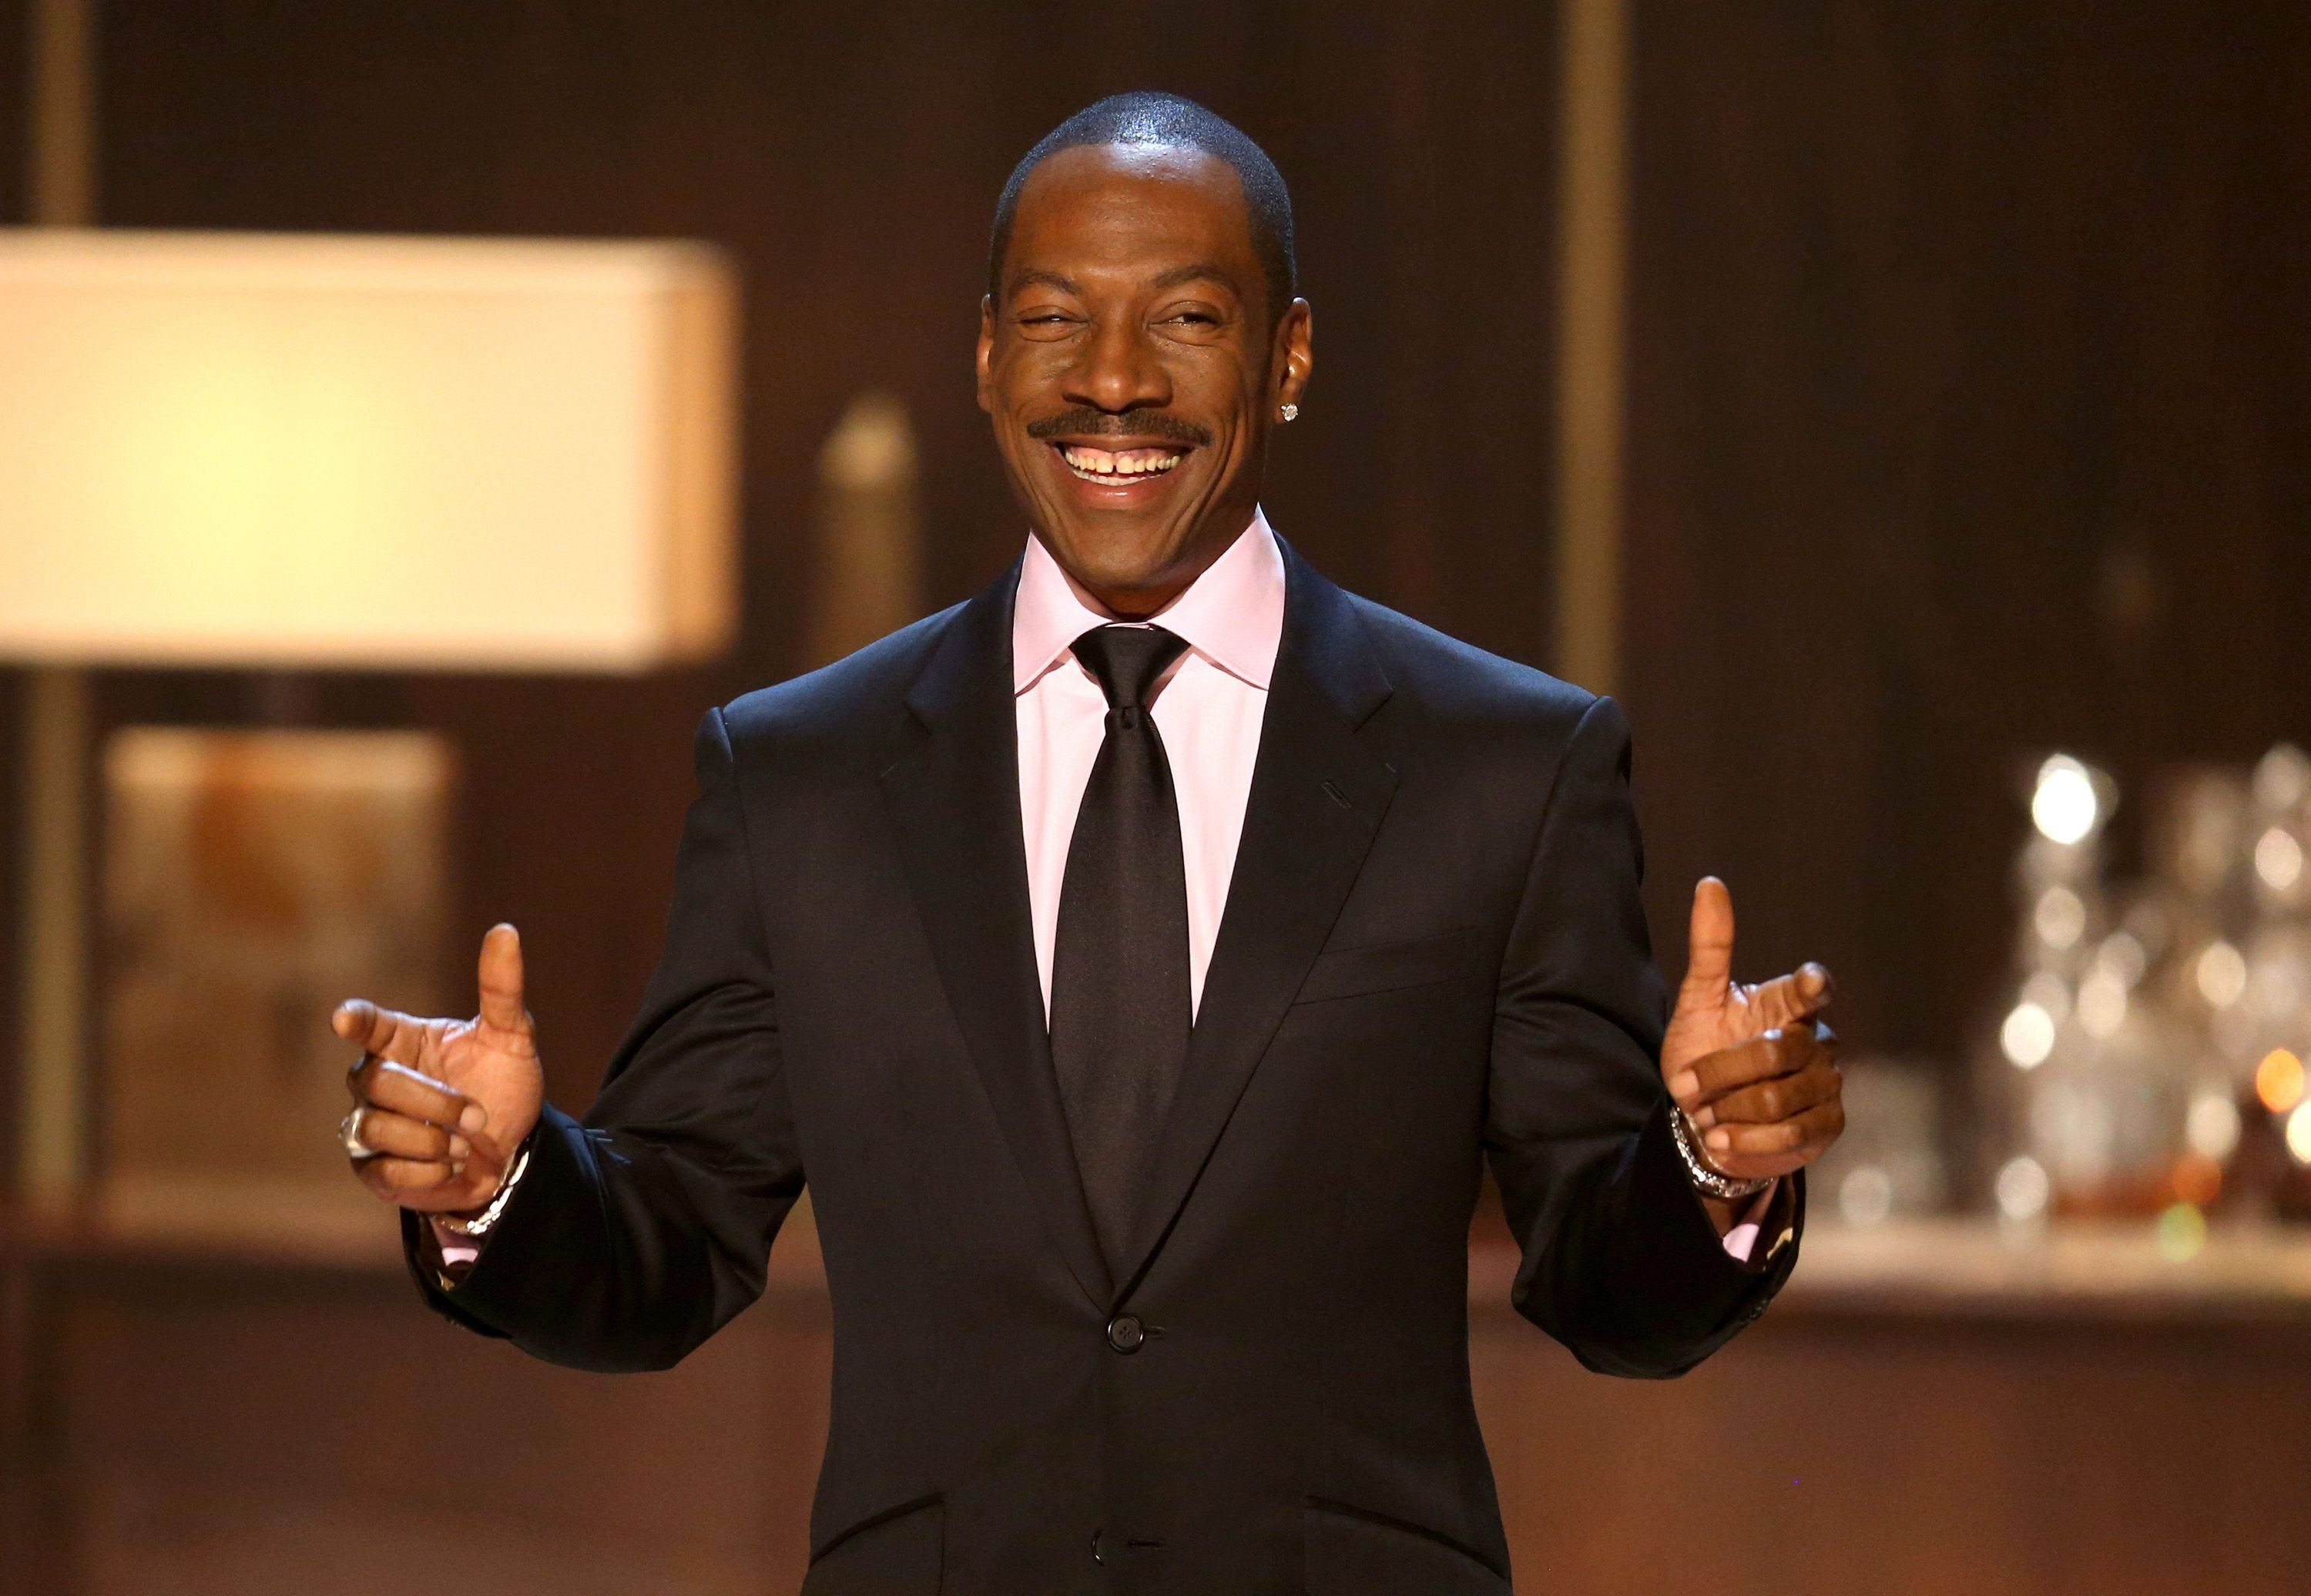 """Eddie Murphy at Spike TV's """"Eddie Murphy: One Night Only"""" at the Saban Theatre on November 3, 2012 in Beverly Hills, California. 